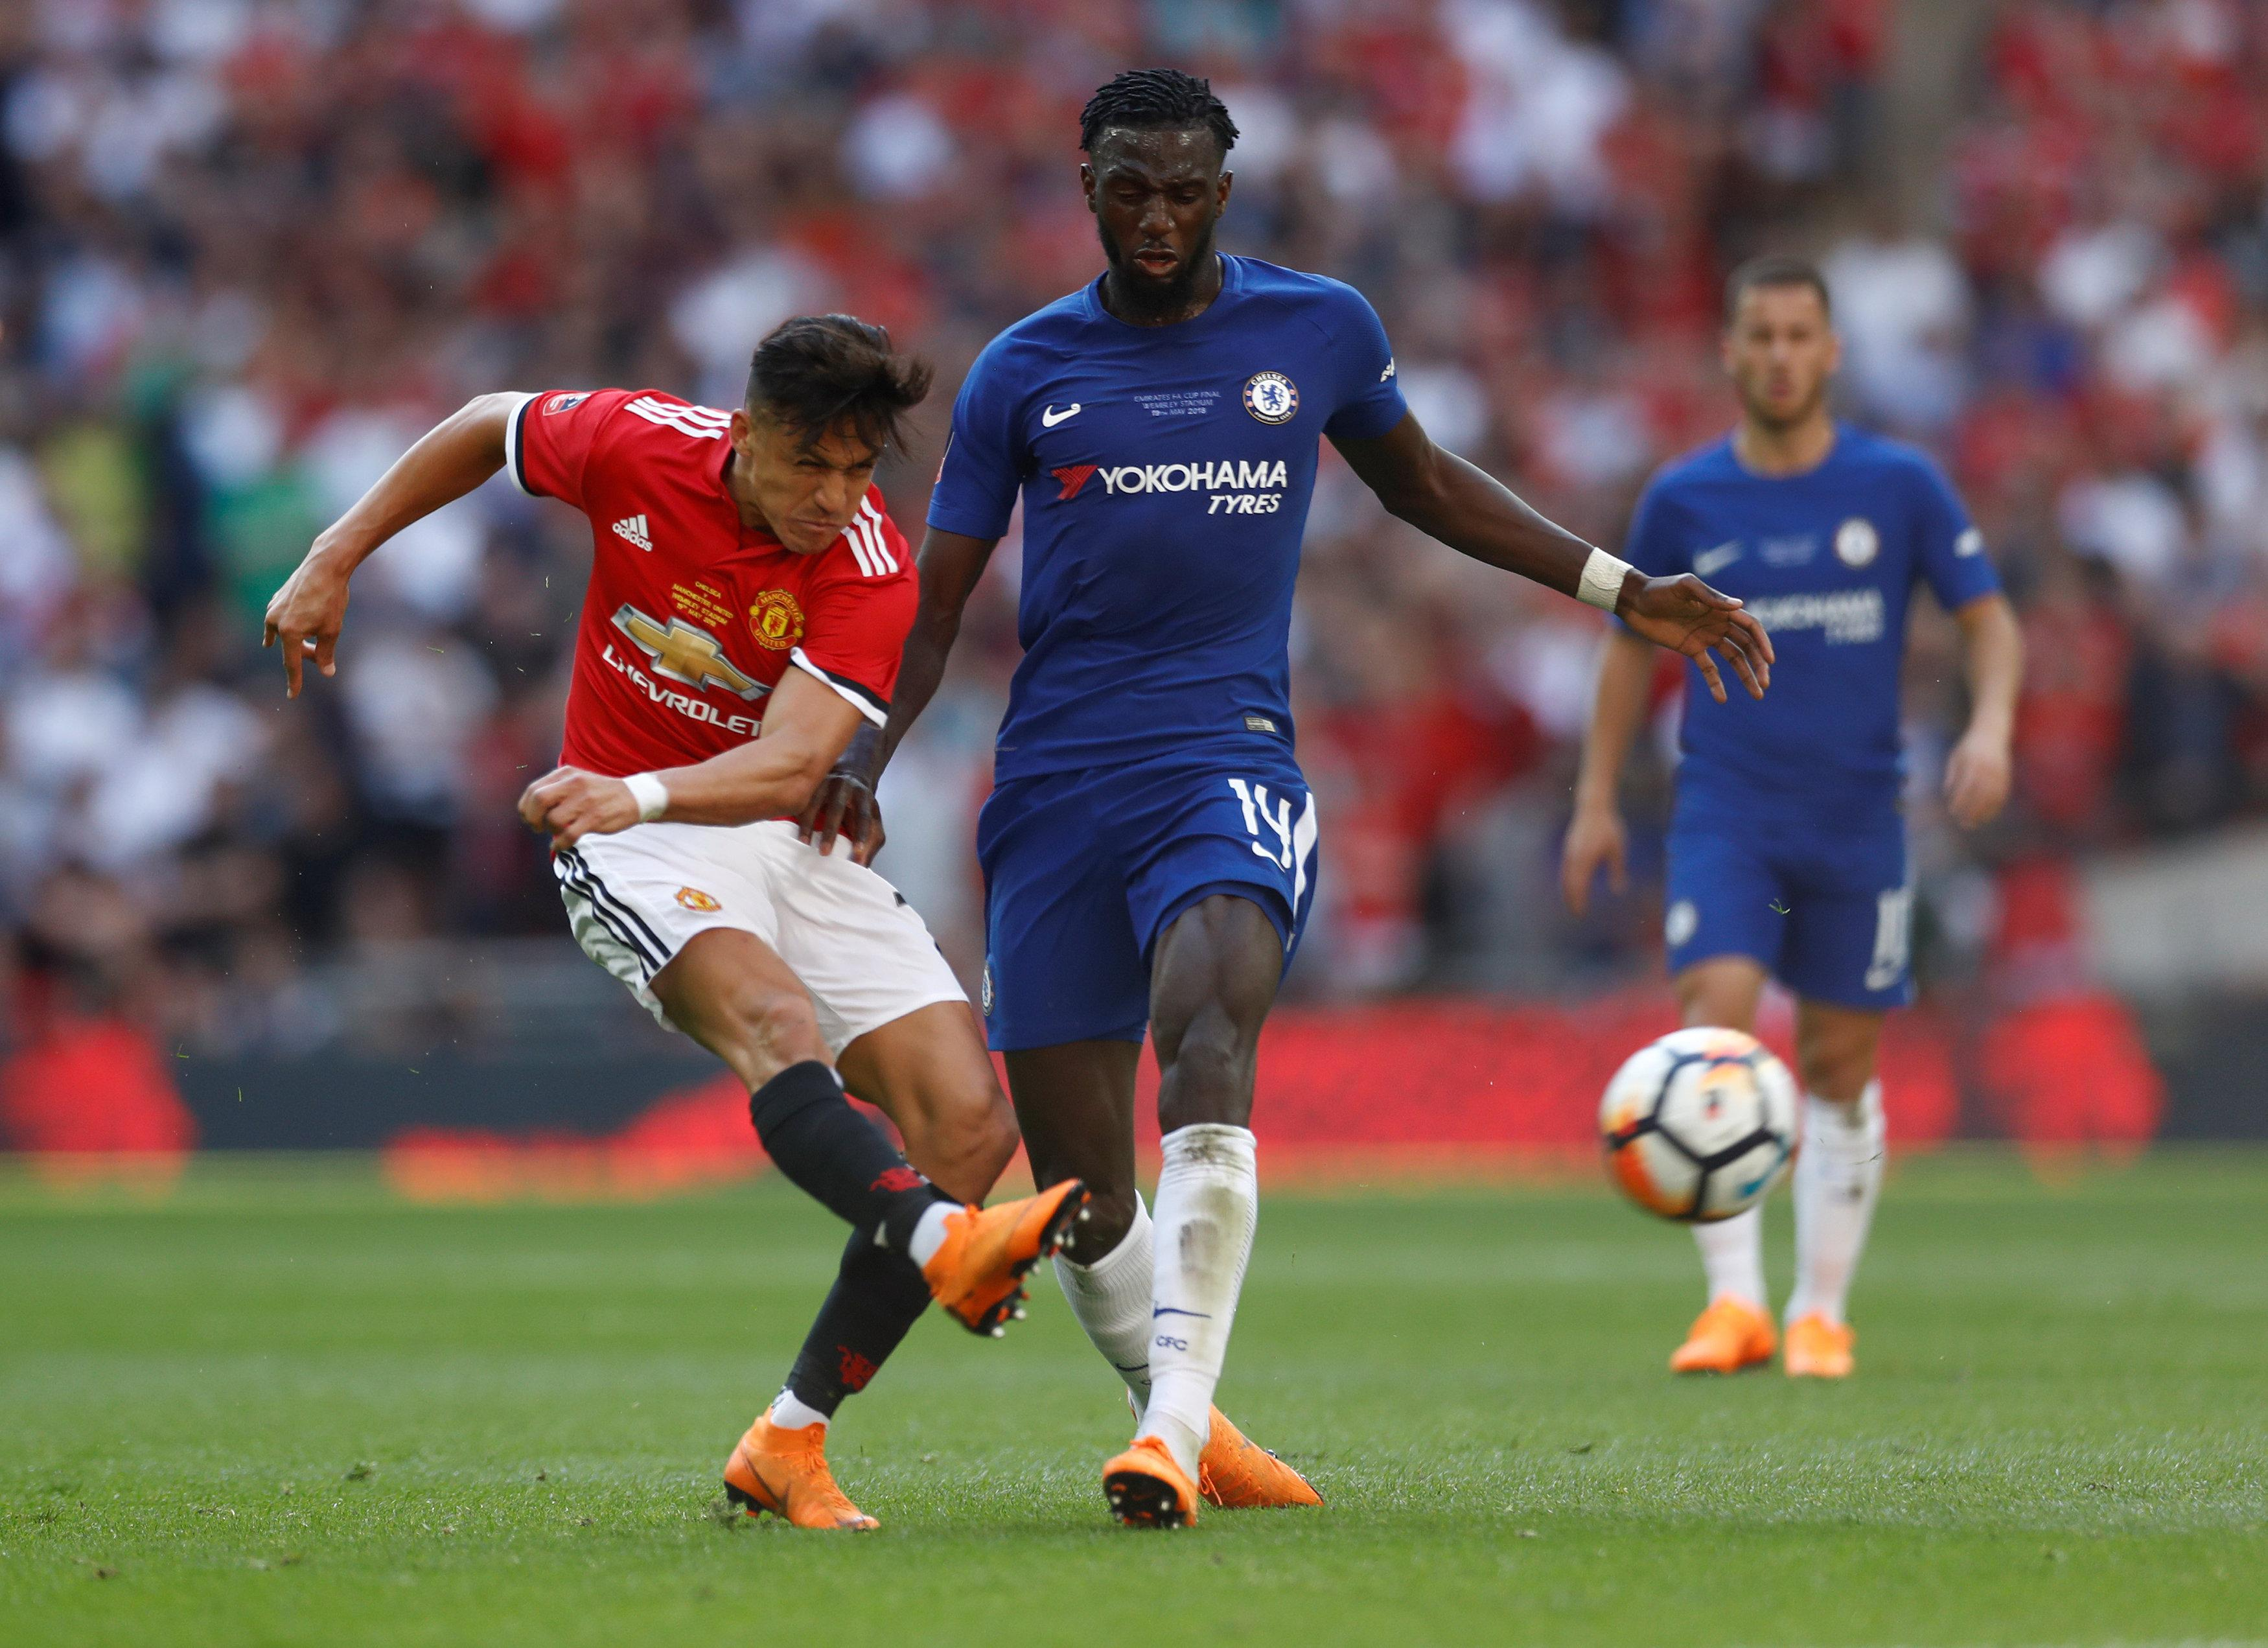 Bakayoko has shown real promise in recent weeks